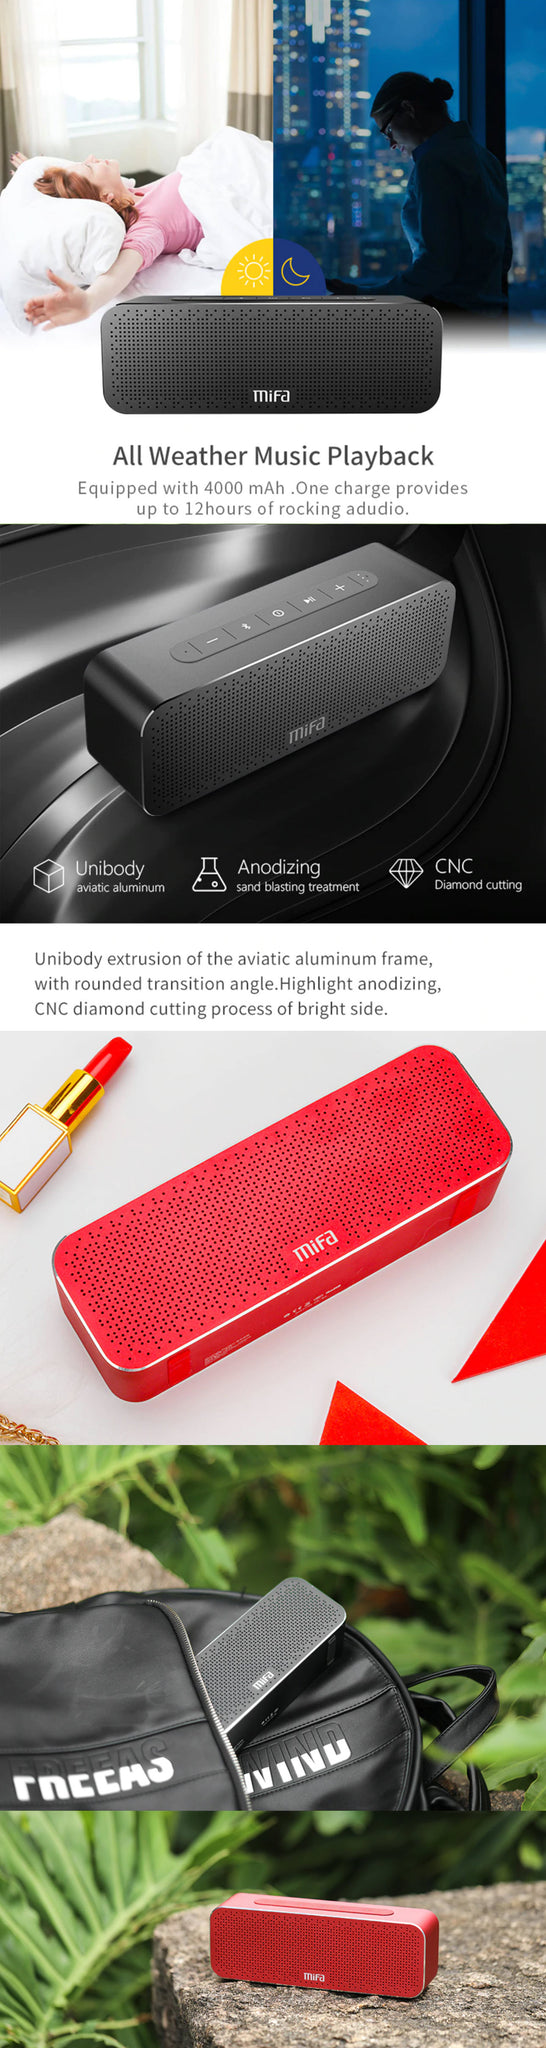 MIFA Portable Bluetooth Speaker Boombox All Weather Music Playback and Other Features